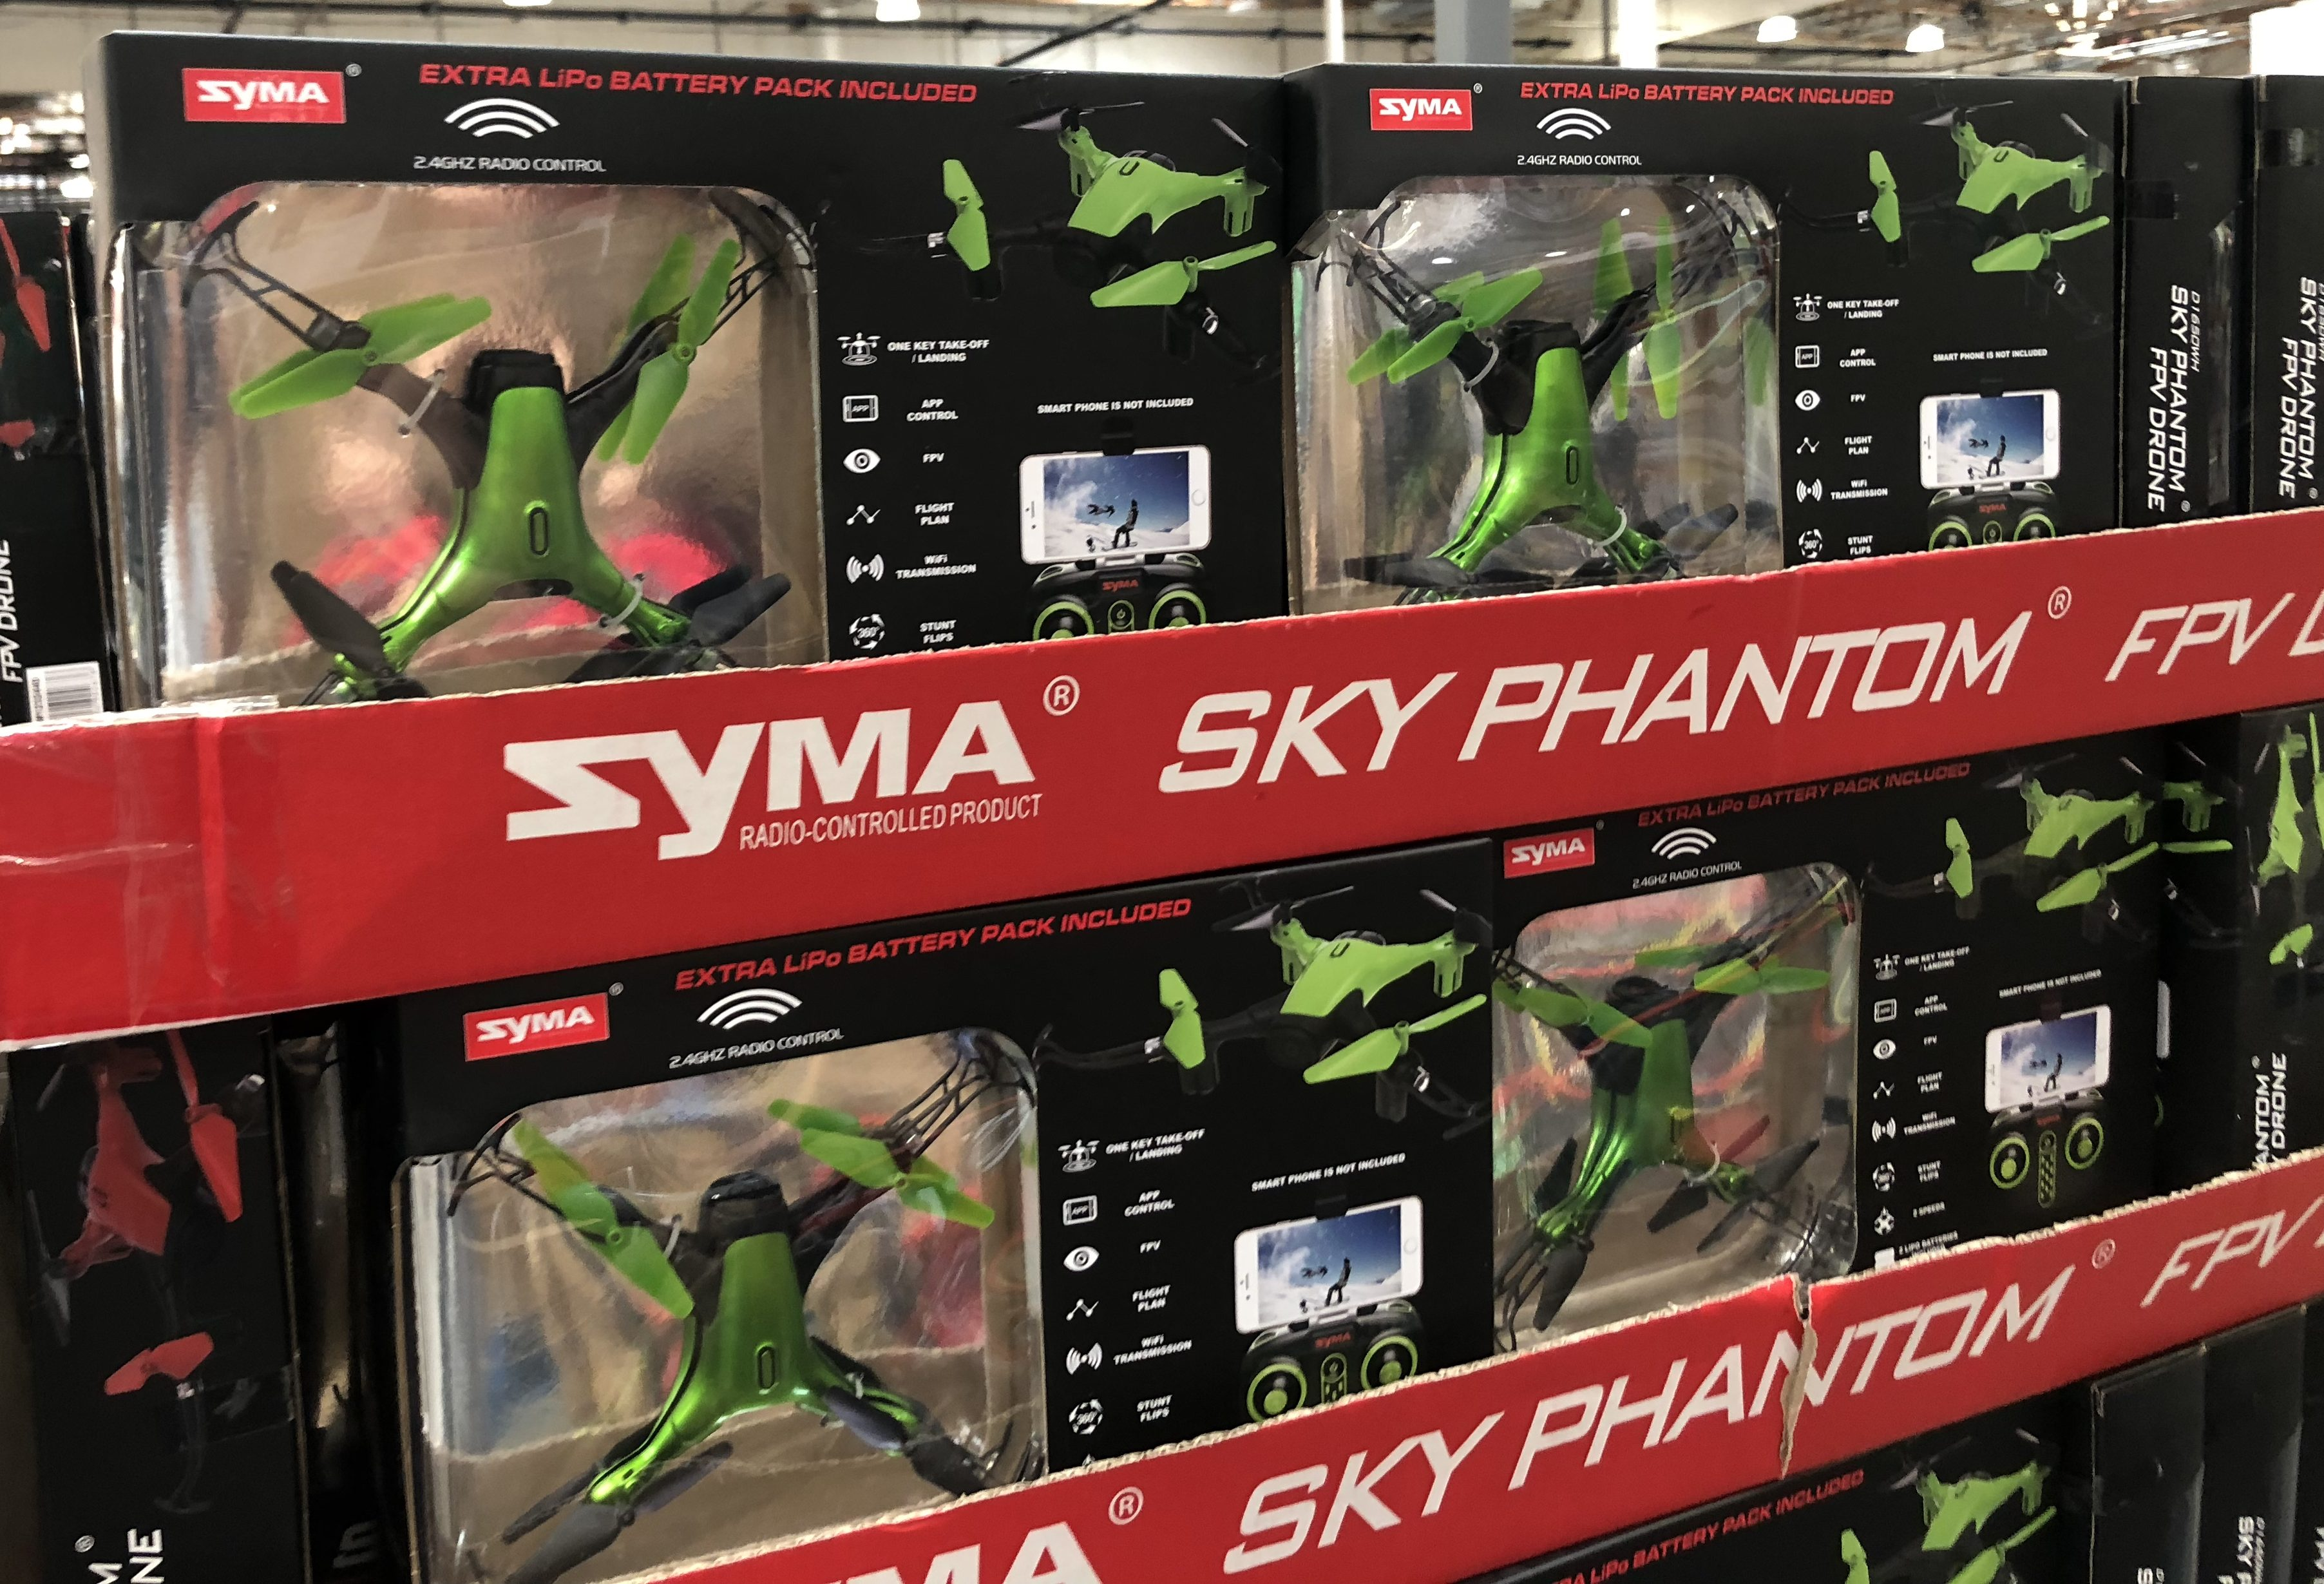 The best holiday toy deals for 2018 include the Syma sky phantom at Costco